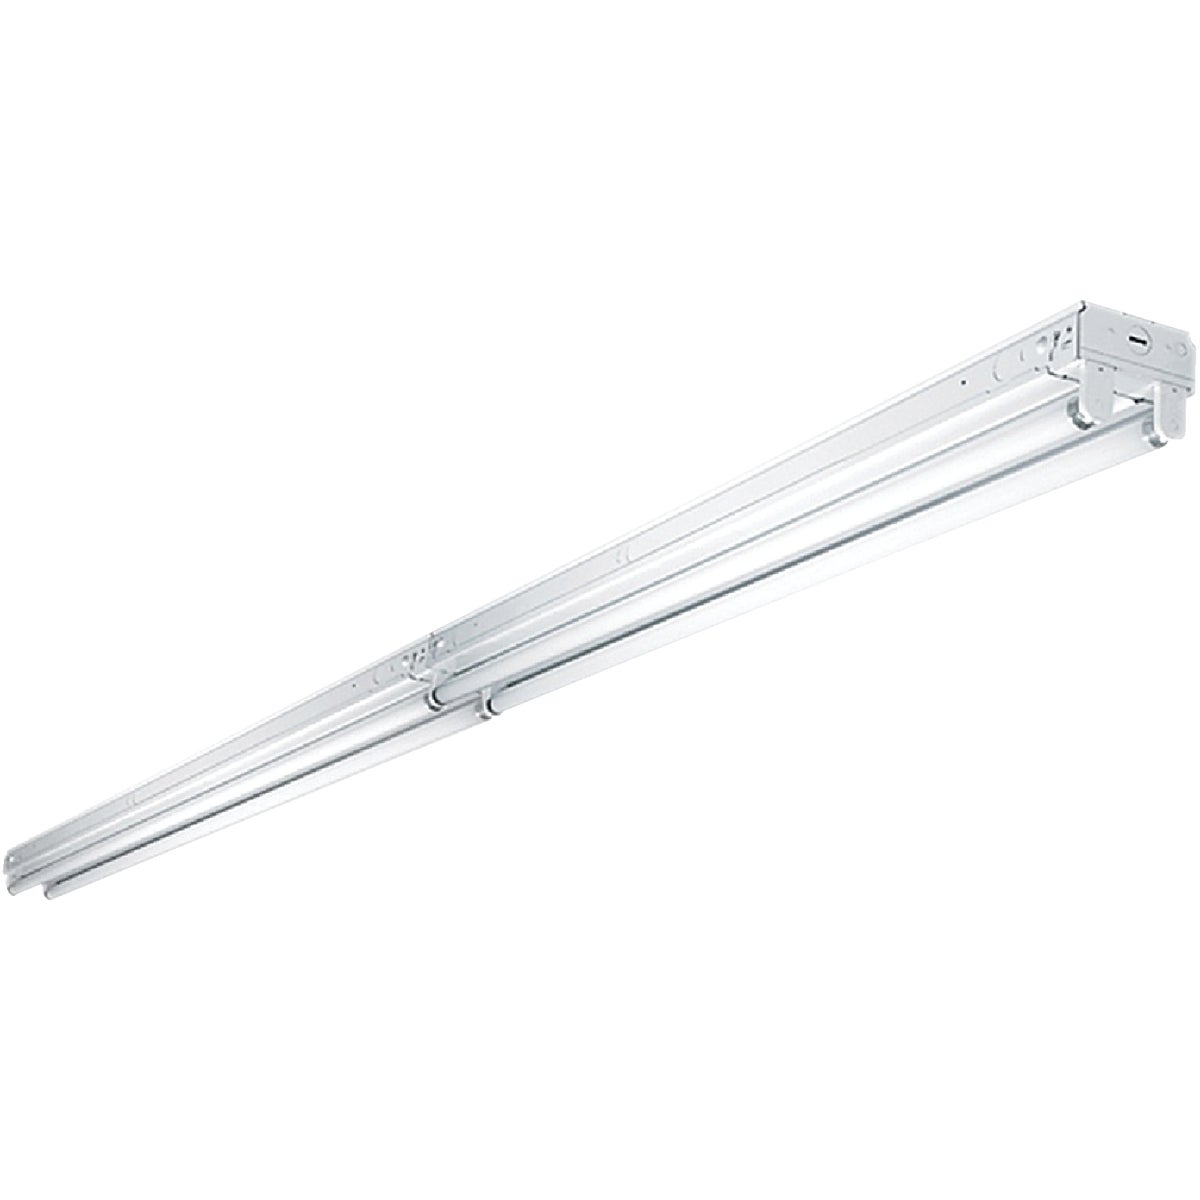 8' T8 4BULB STRIP LIGHT